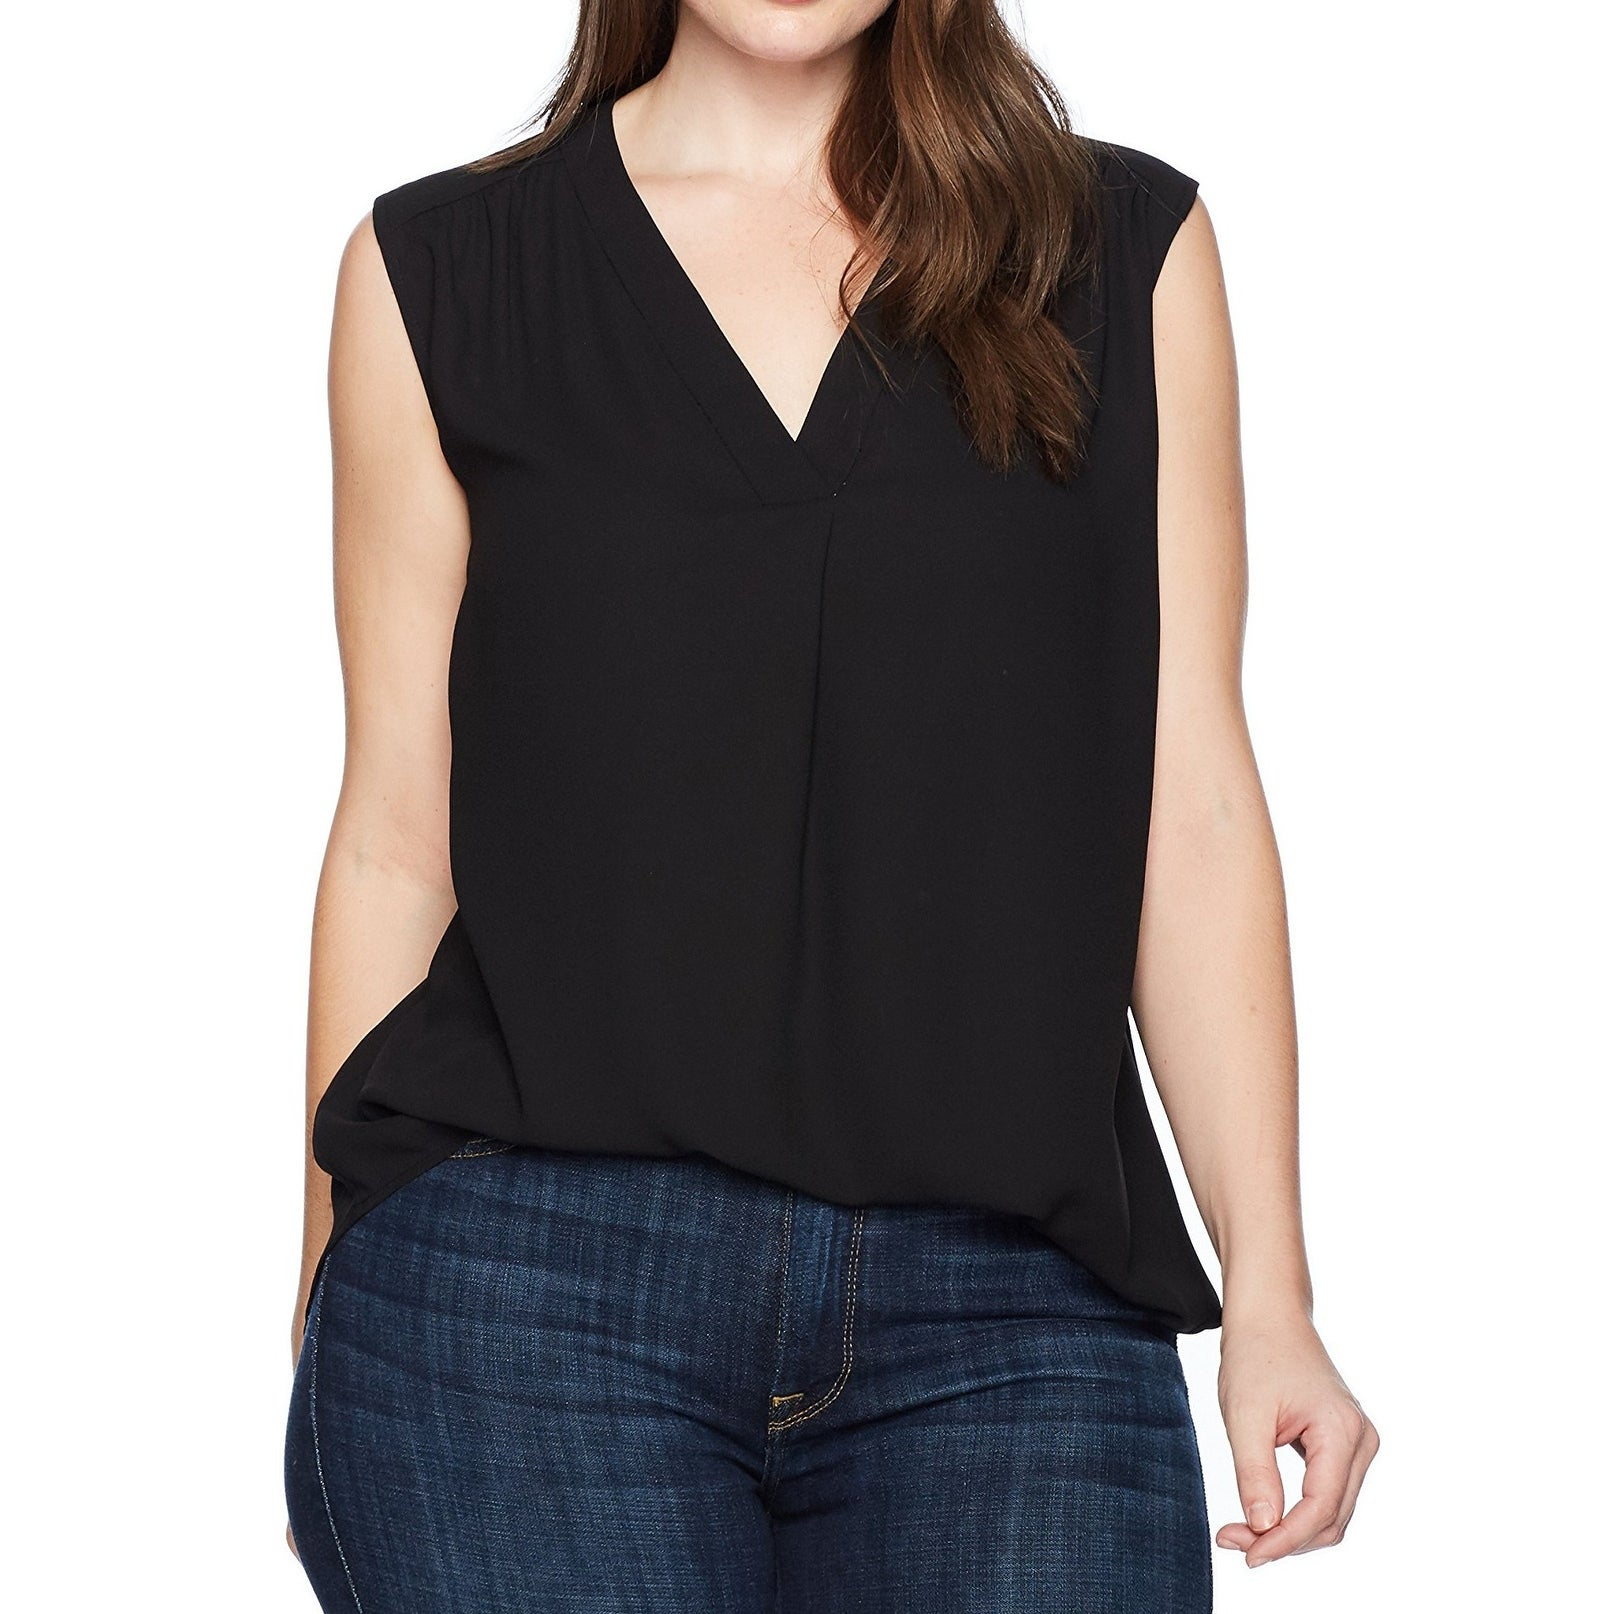 115068e56e9fd8 Shop Nine West Deep Black Women's Size 2X Plus V-Neck Solid Blouse - Free  Shipping On Orders Over $45 - Overstock - 27142264